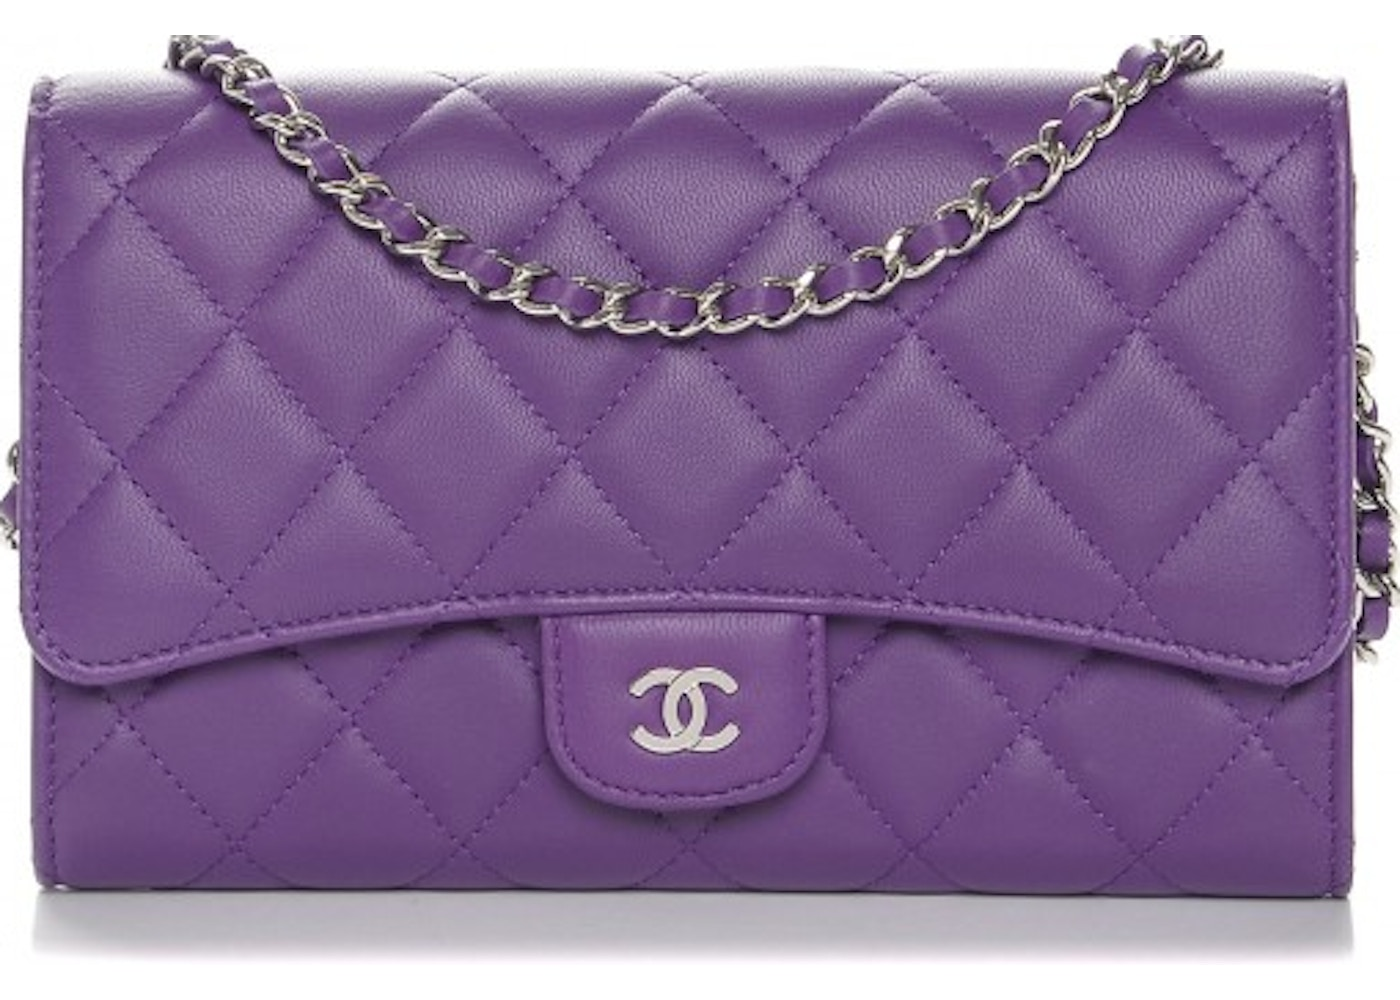 5d1c7a91de4a Chanel Removable Chain Wallet On Chain Quilted Purple. Quilted Purple